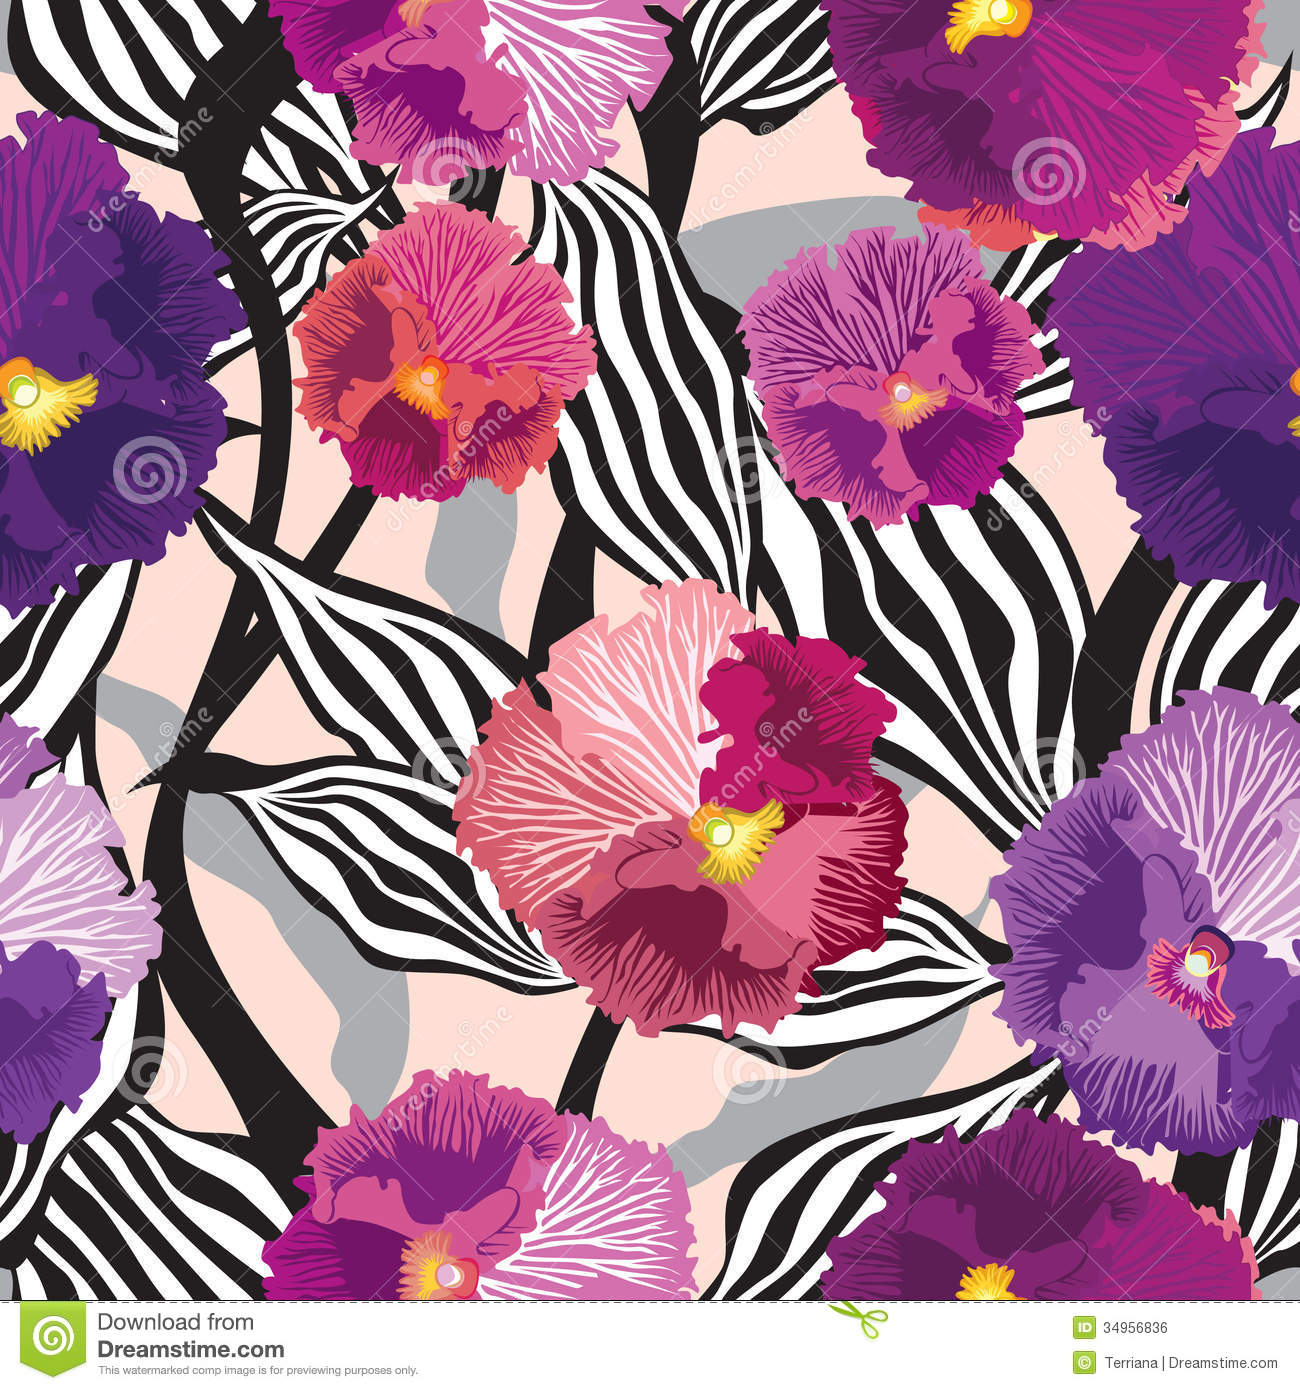 Flowers Seamless Background. Floral Seamless Texture With